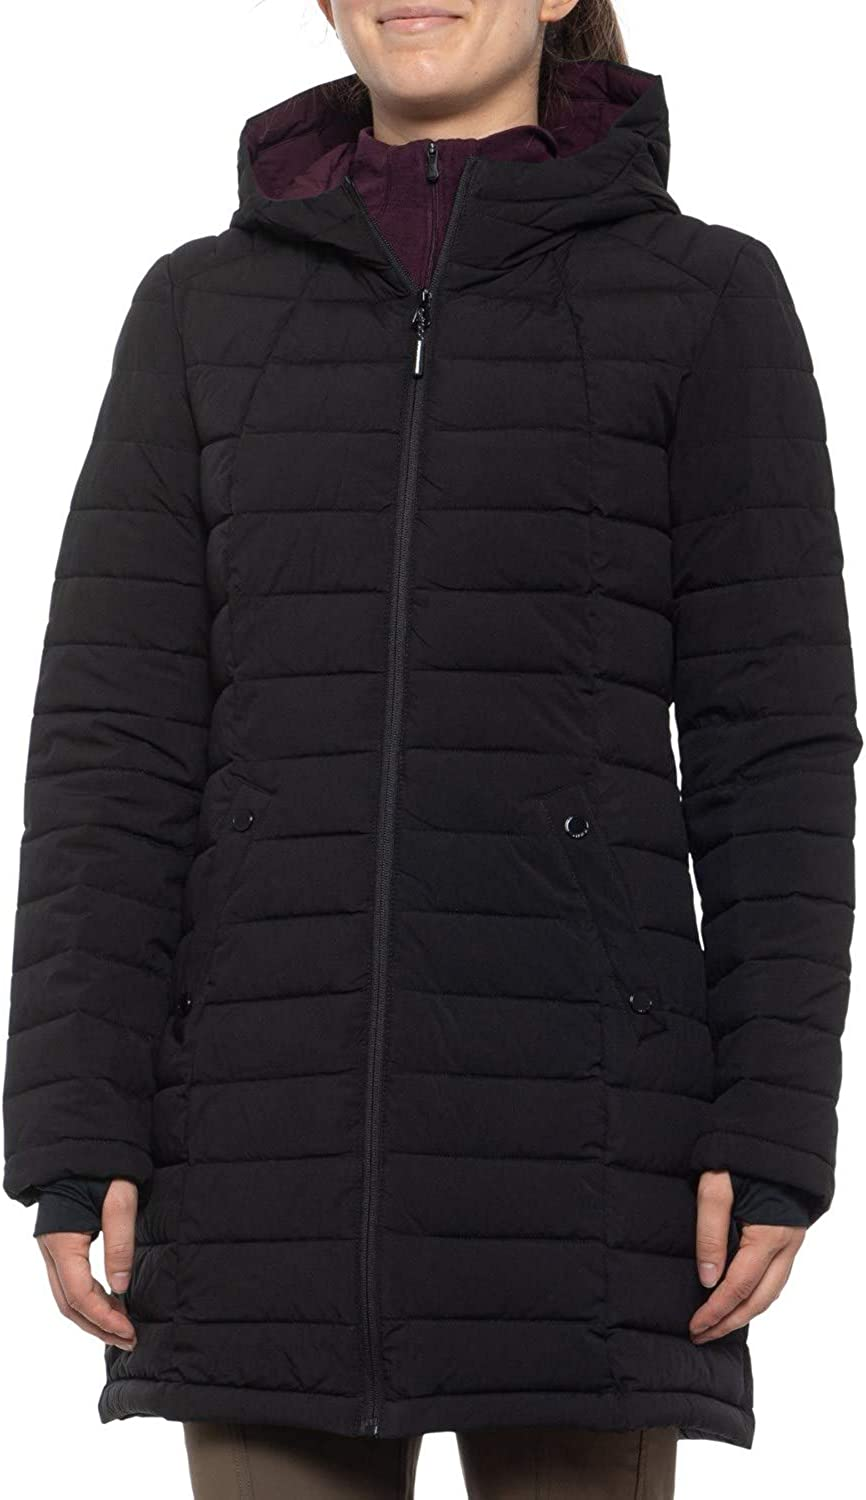 HFX Halifax Scuba Stretch Active Hooded Puffer Coat